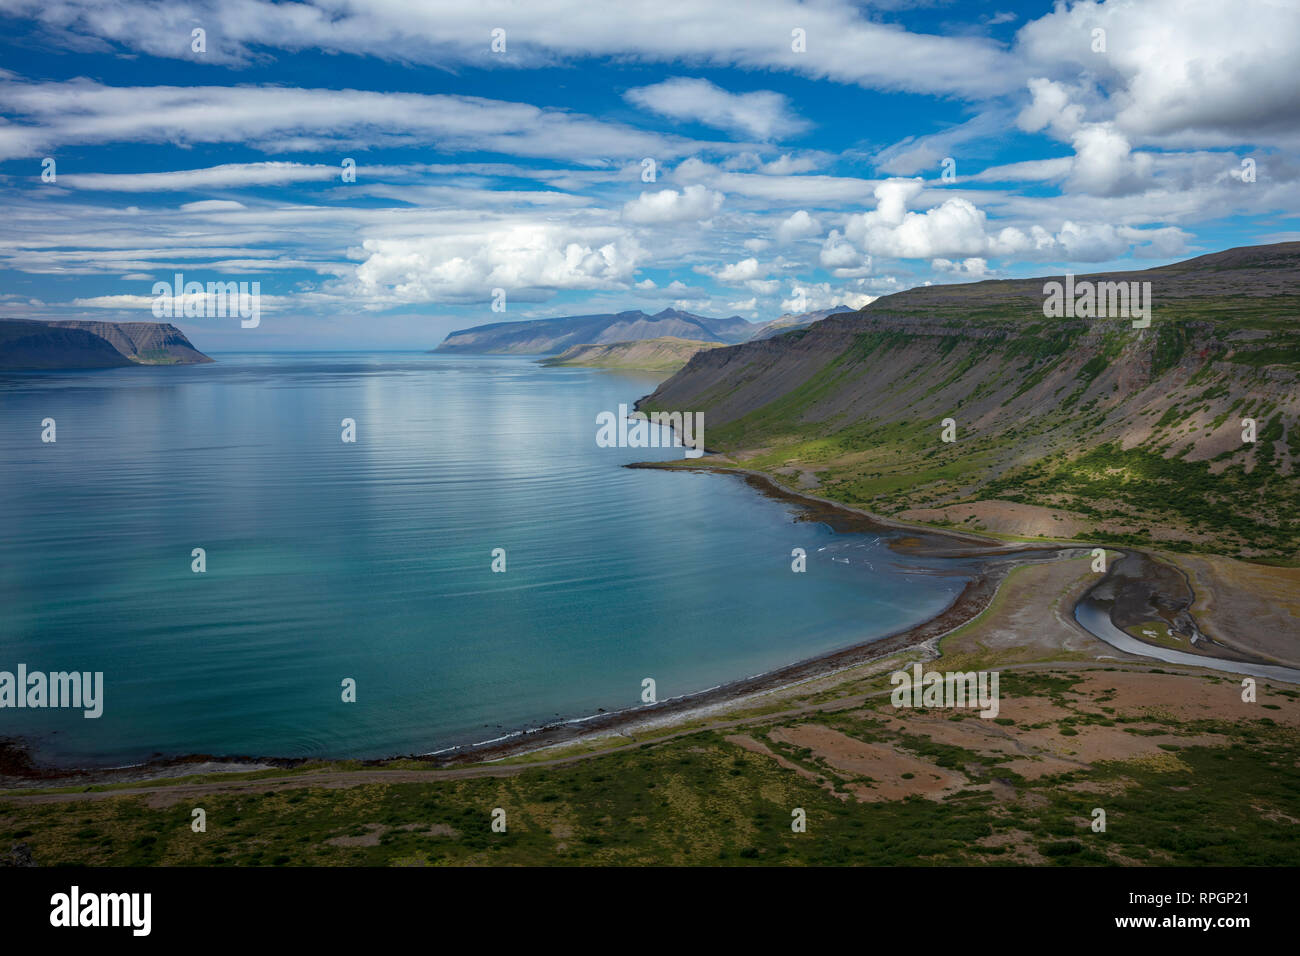 View over Arnarfjordur fjord from Nordfjall. Westfjords, Iceland. - Stock Image